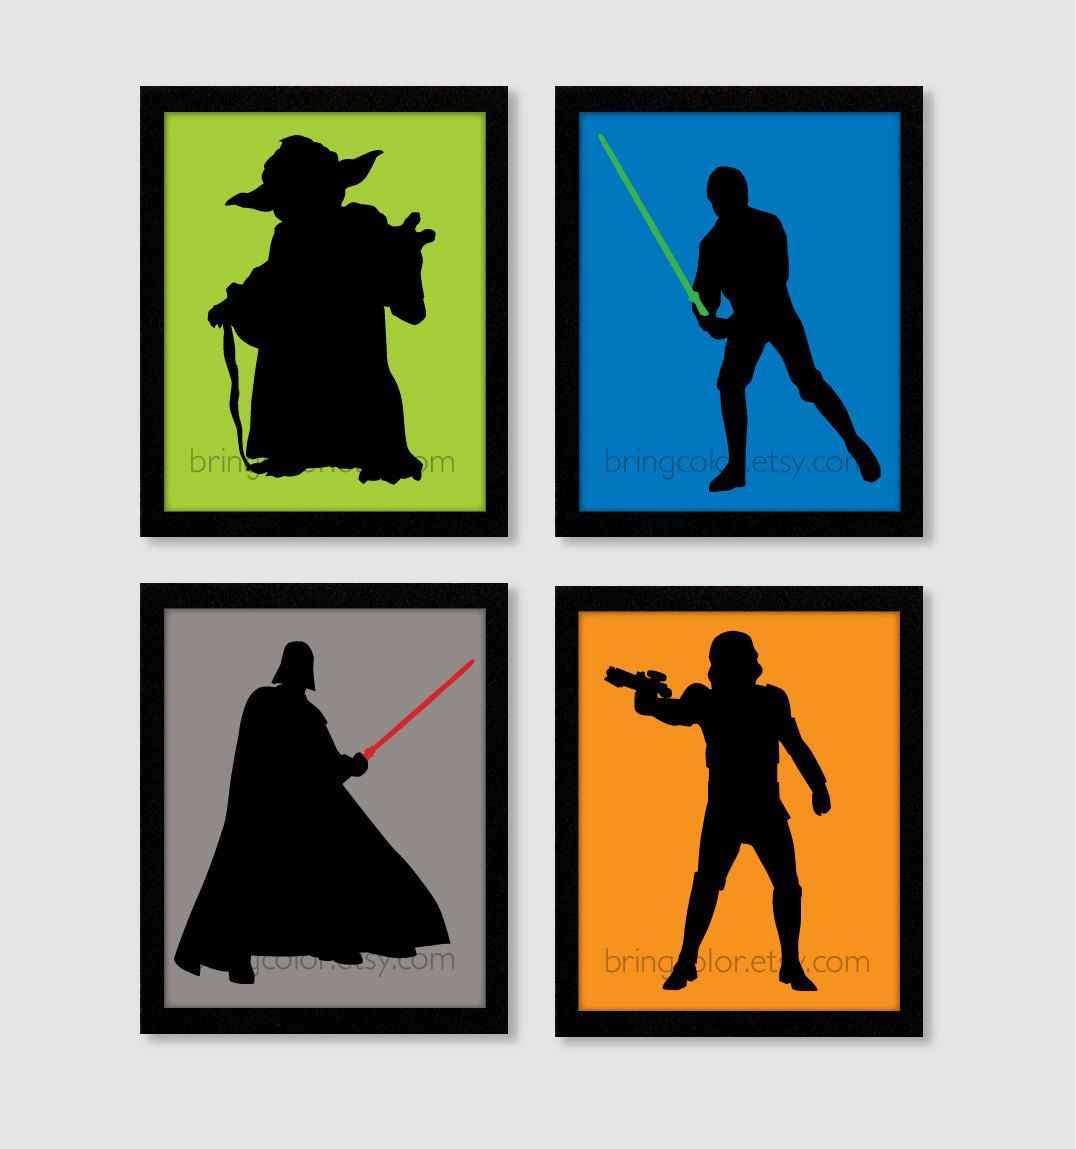 star wars characters silhouettes set of 4 8x10 digital wall art star wars characters silhouettes set of 4 8x10 digital wall art prints for home kids bedroom or nursery